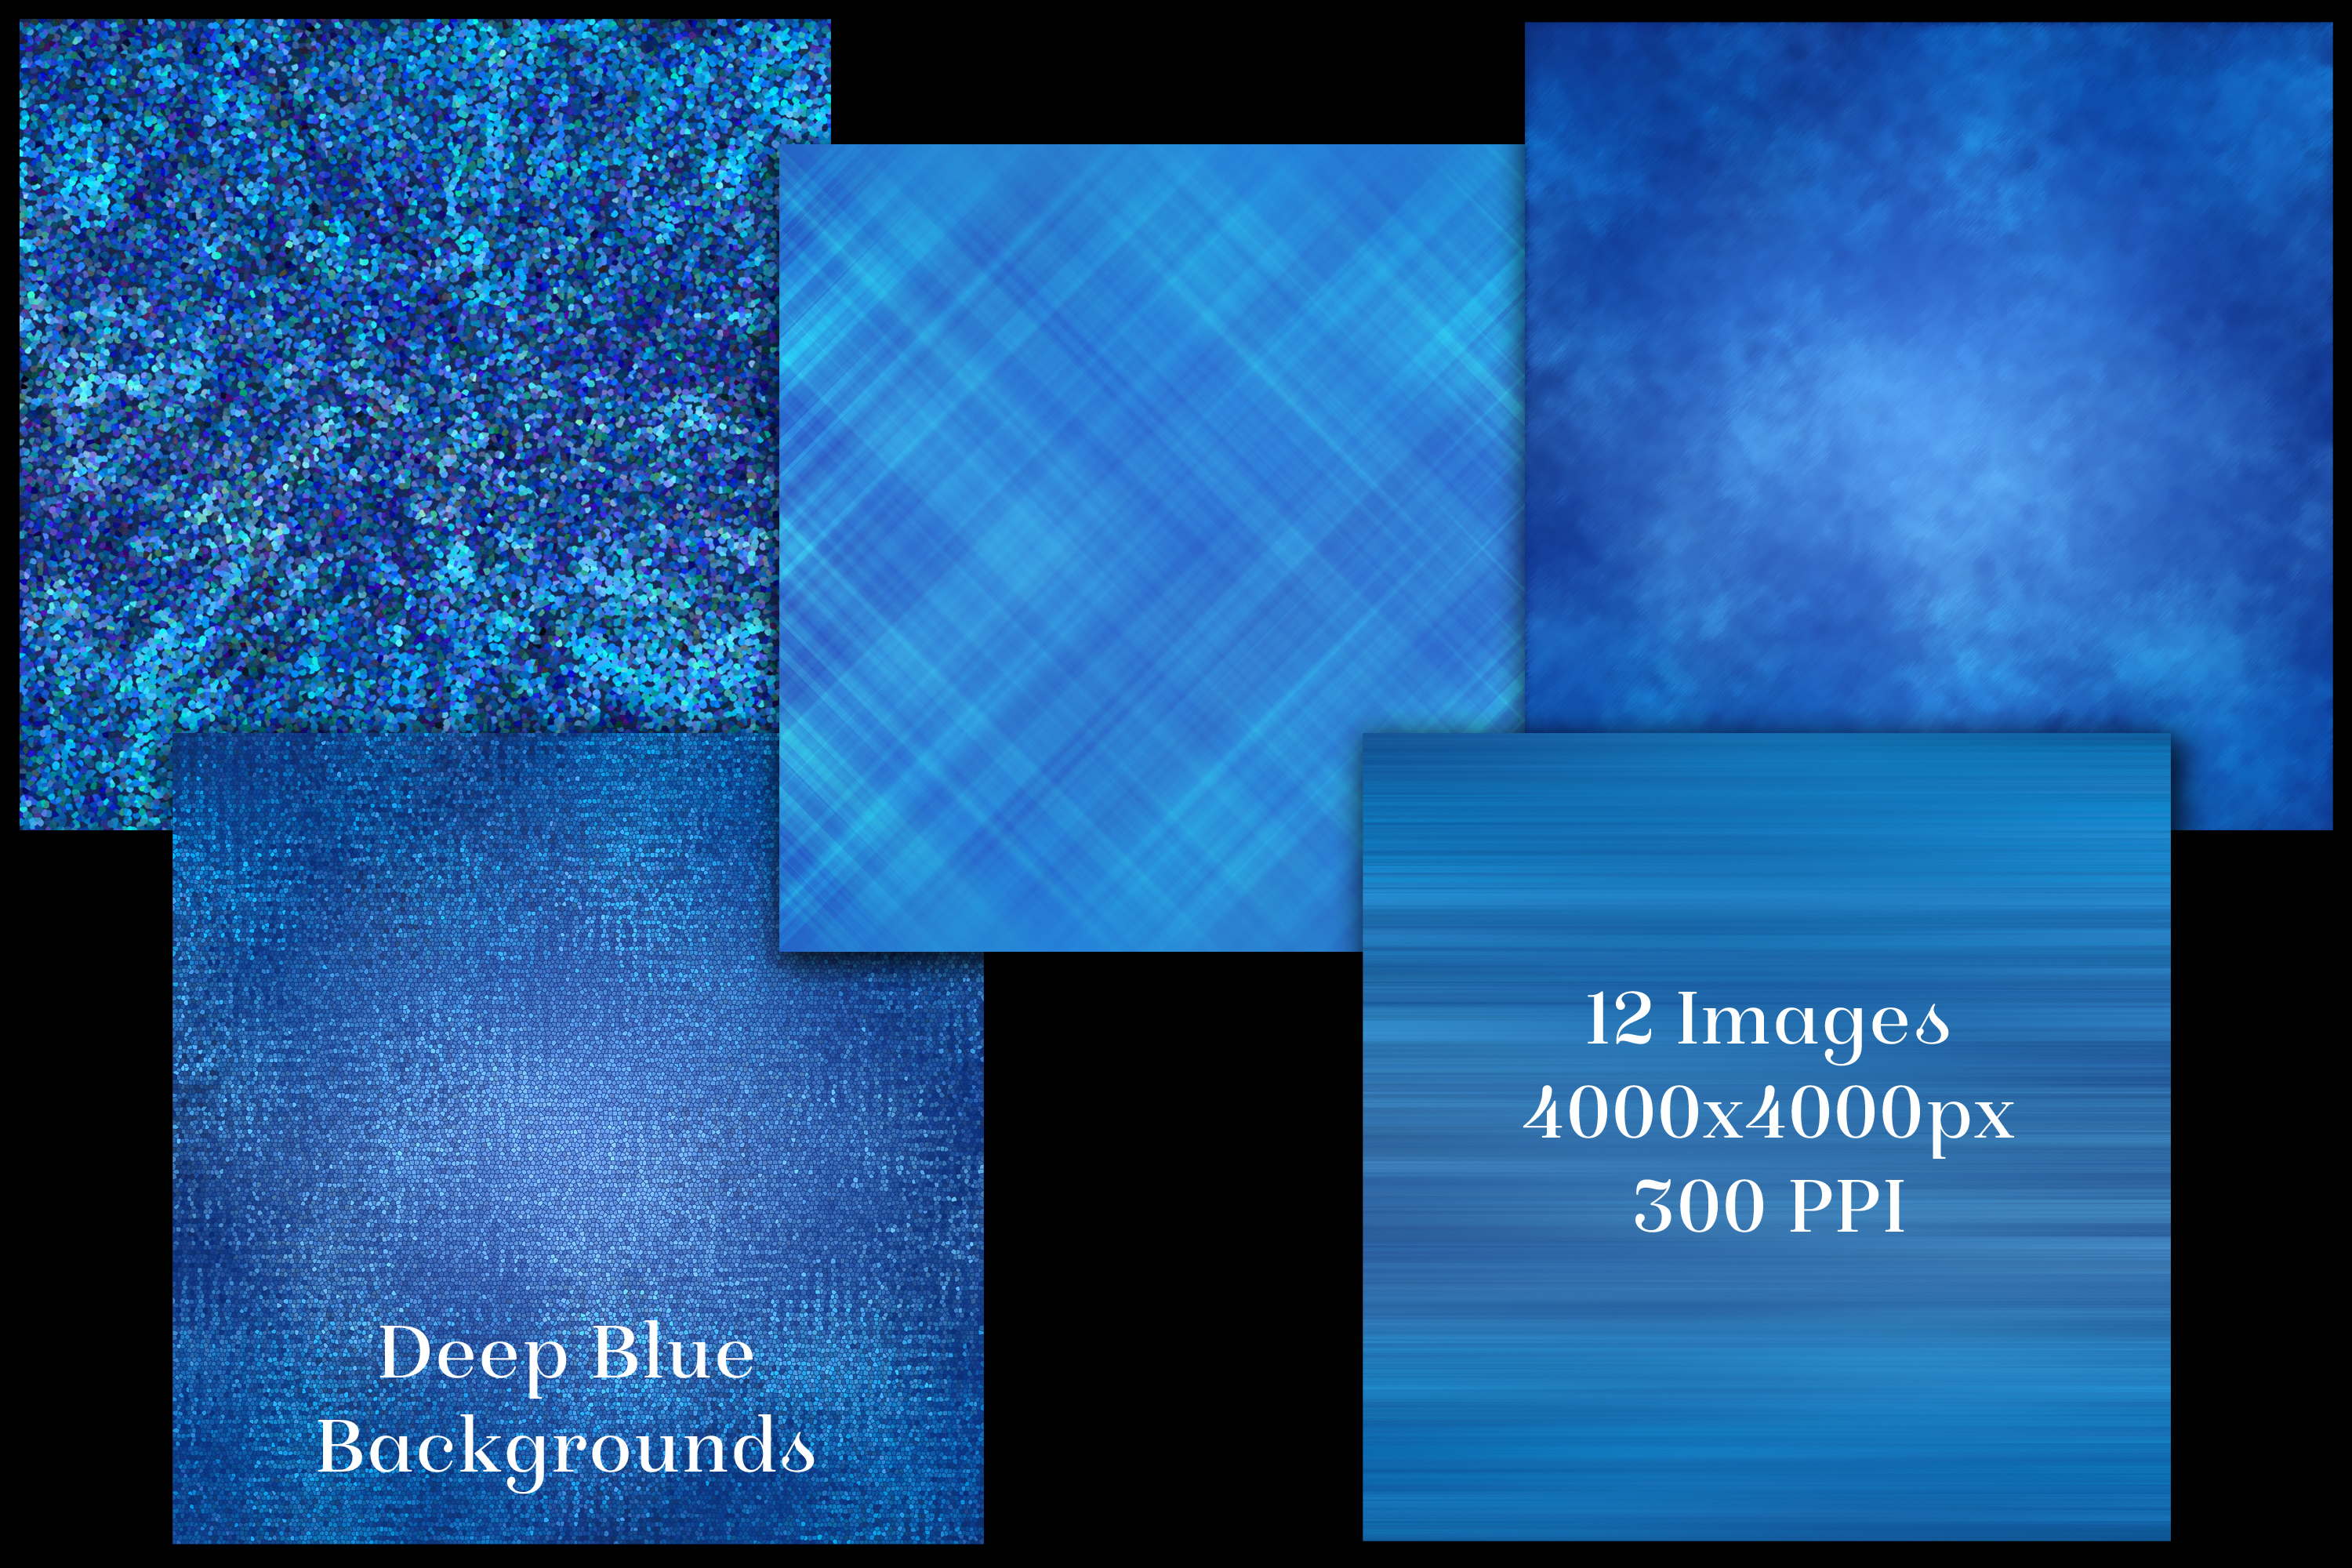 Deep Blue Backgrounds - 12 Image Textures Set example image 2